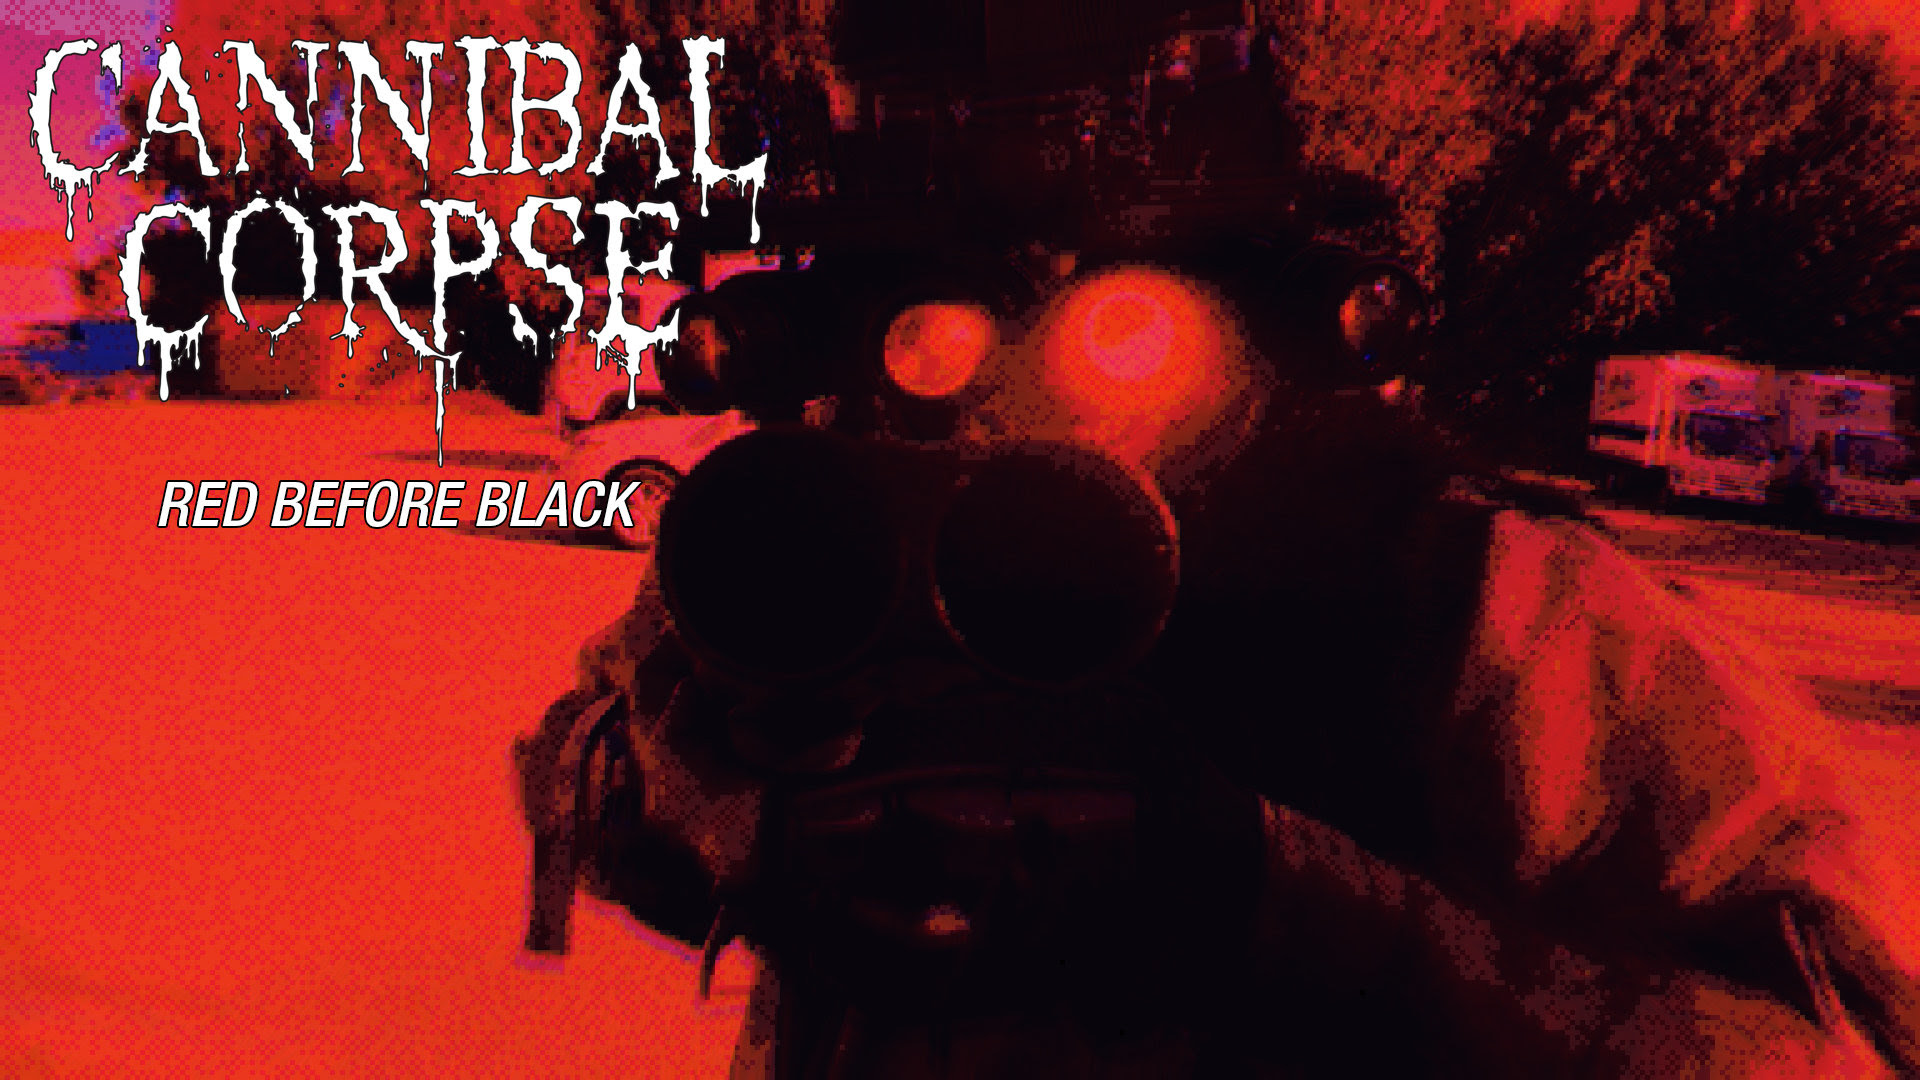 Cannibal Corpse Red Before Black Video – R o c k 'N' L o a d